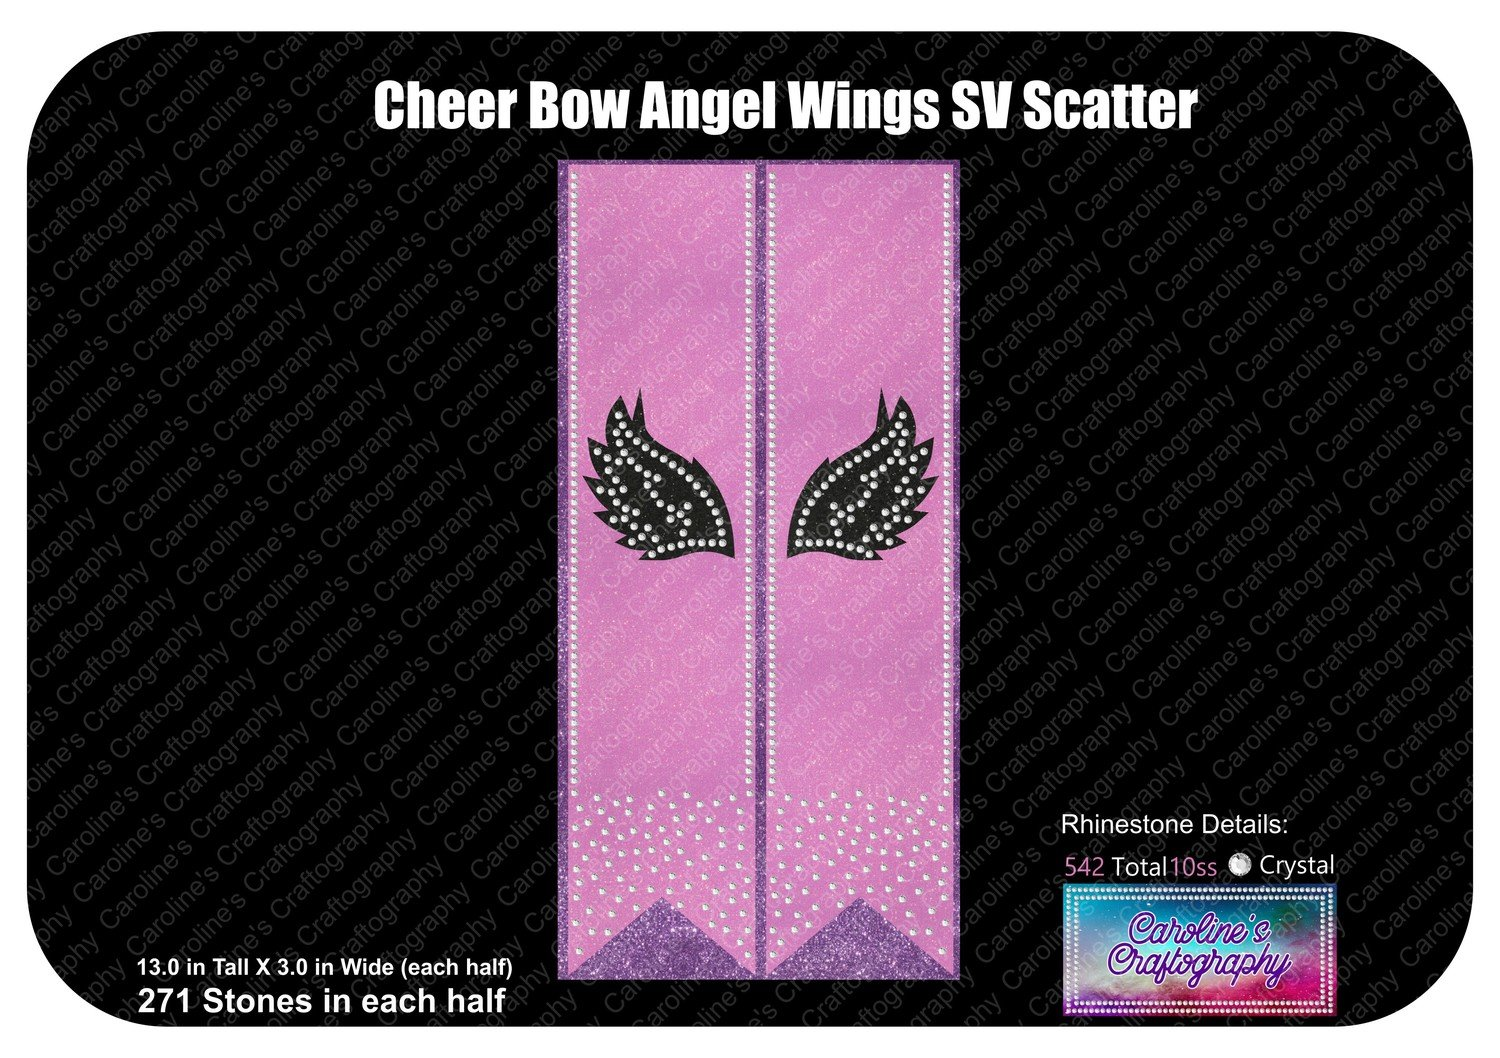 Cheer Bow Angel Wings Stone Vinyl Tail Scatter 3 inch